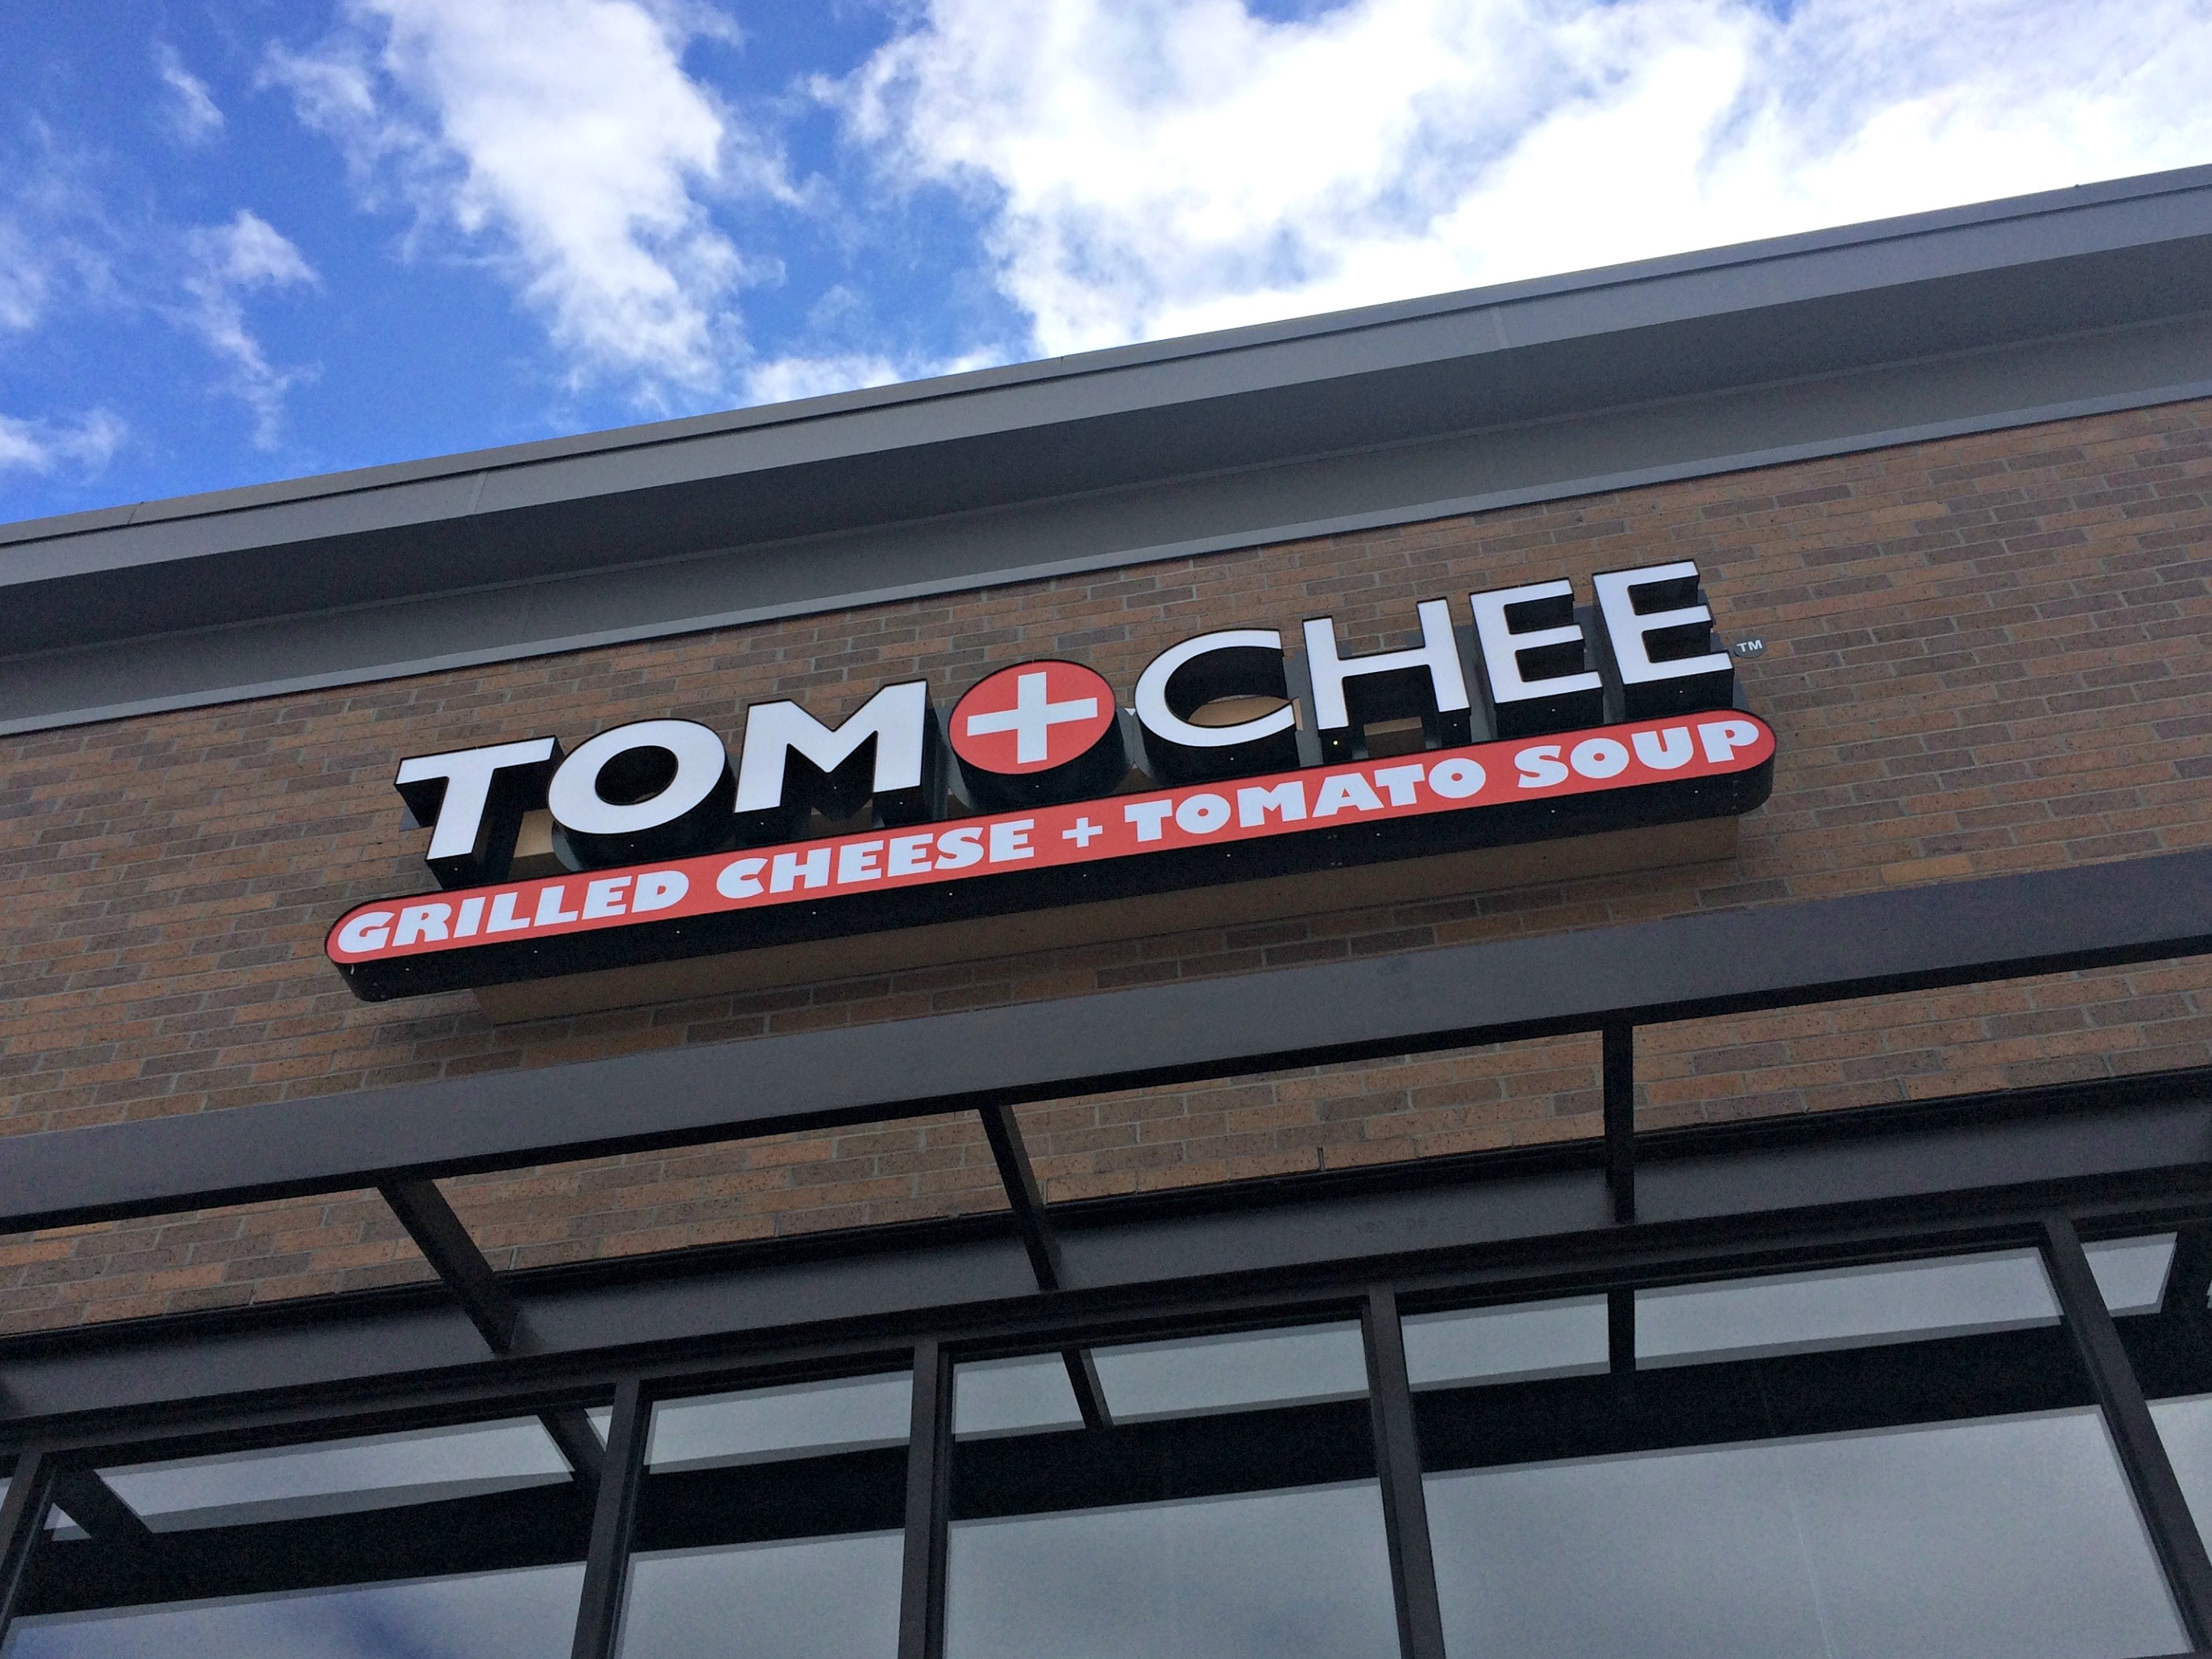 Tom + Chee restaurant